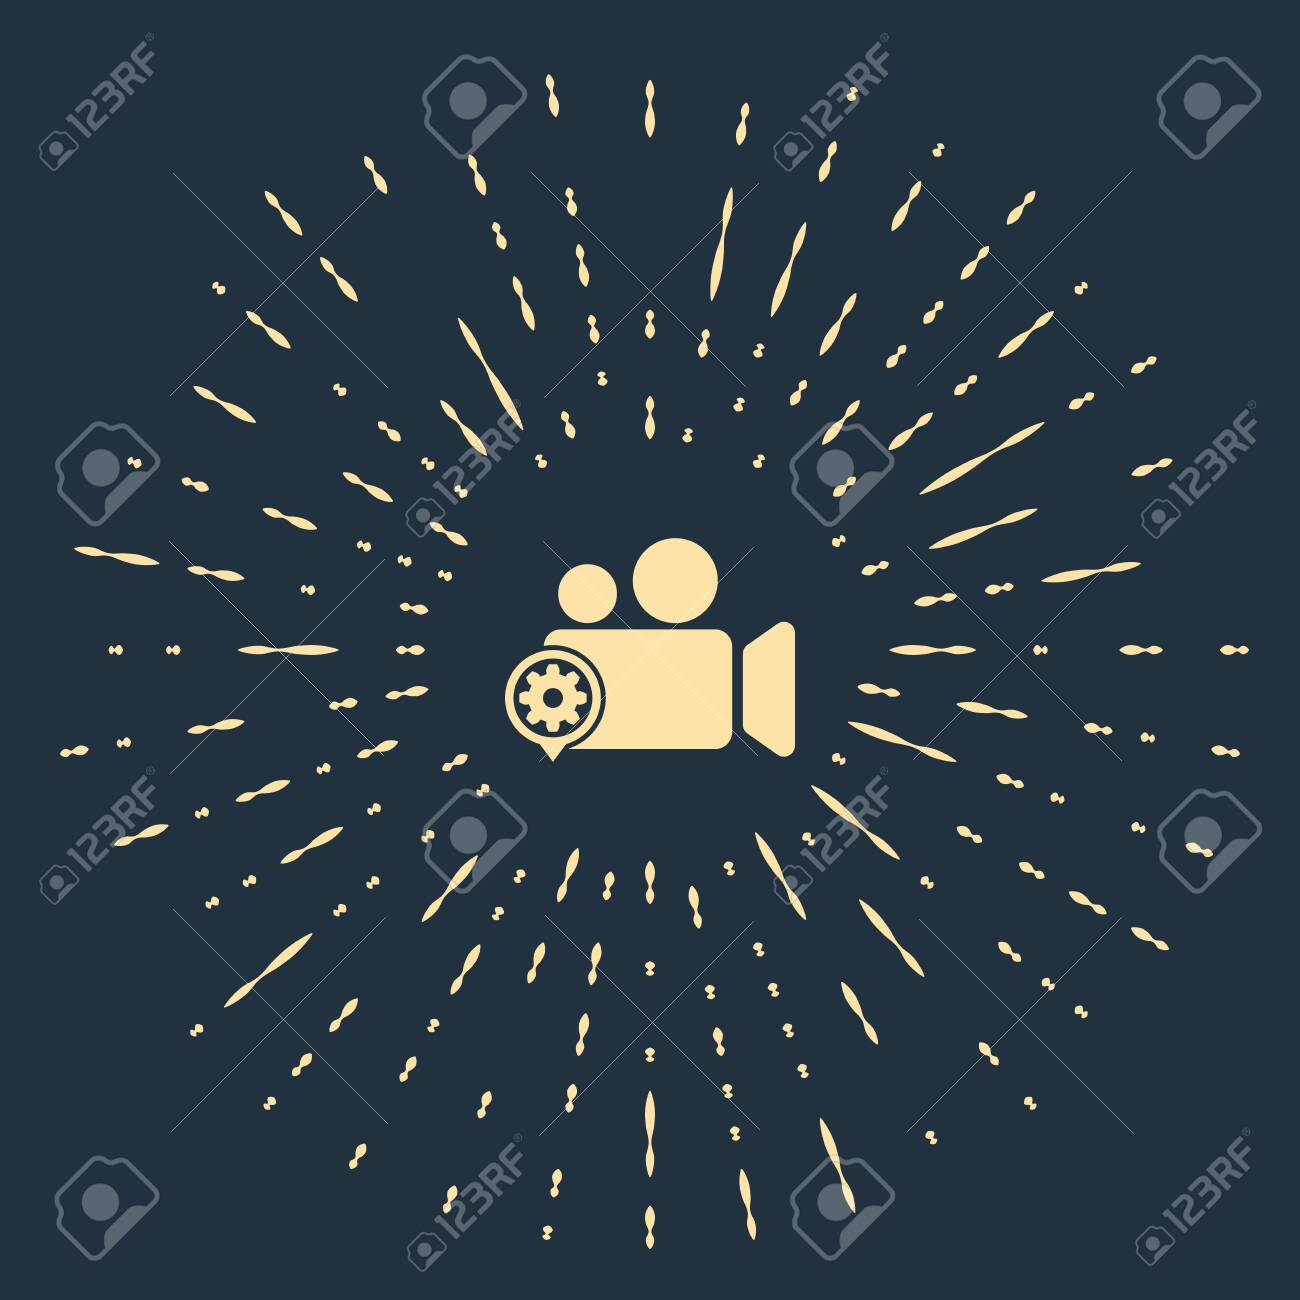 Beige Movie Or Video Camera And Gear Icon On Dark Blue Background Royalty Free Cliparts Vectors And Stock Illustration Image 129541484